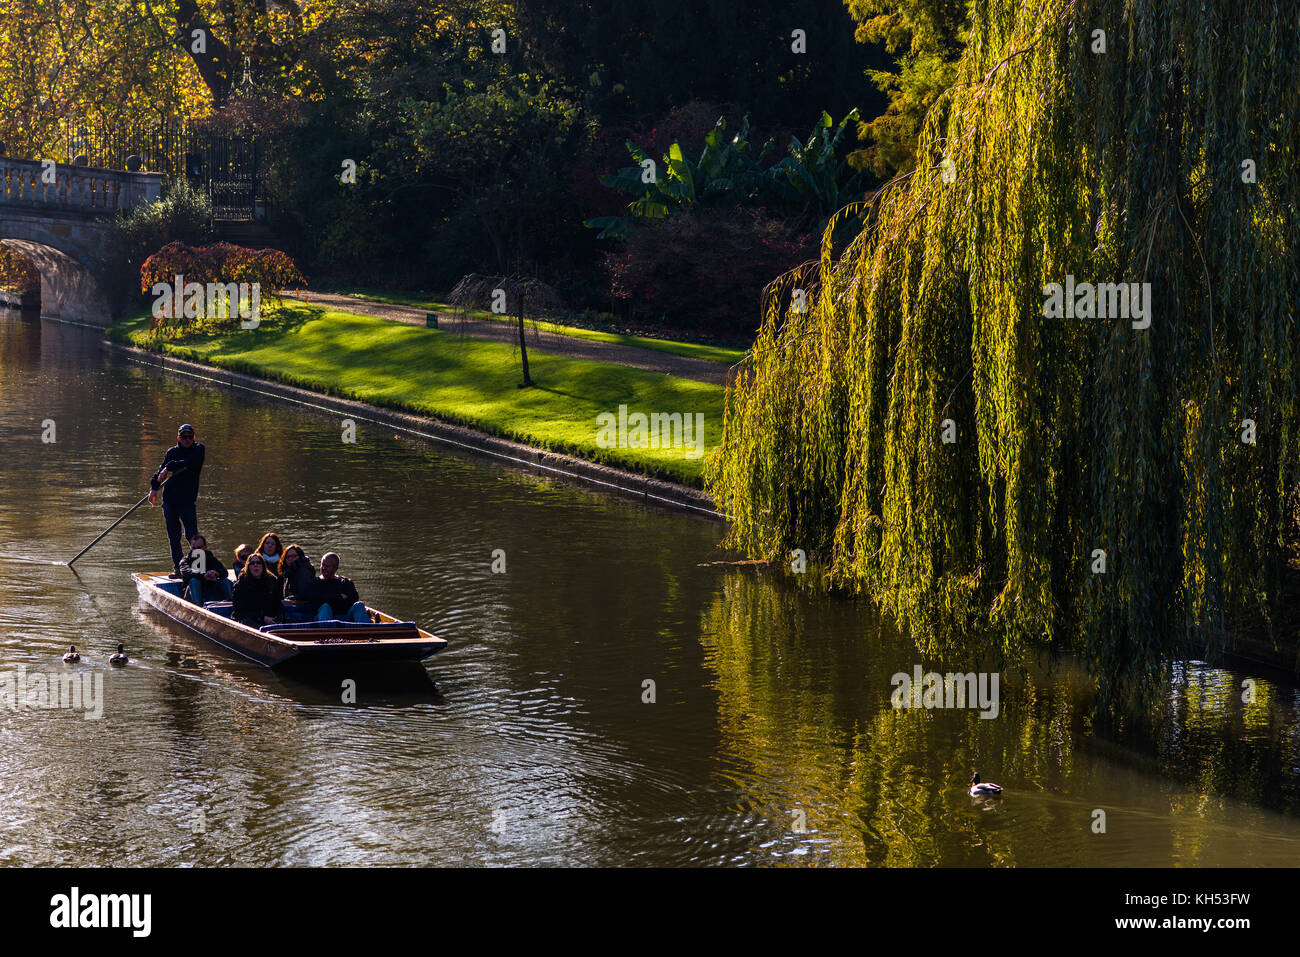 Punting on river Cam next to a weeping willow tree in the 'Backs', Cambridge, Cambridgeshire, England, UK. - Stock Image